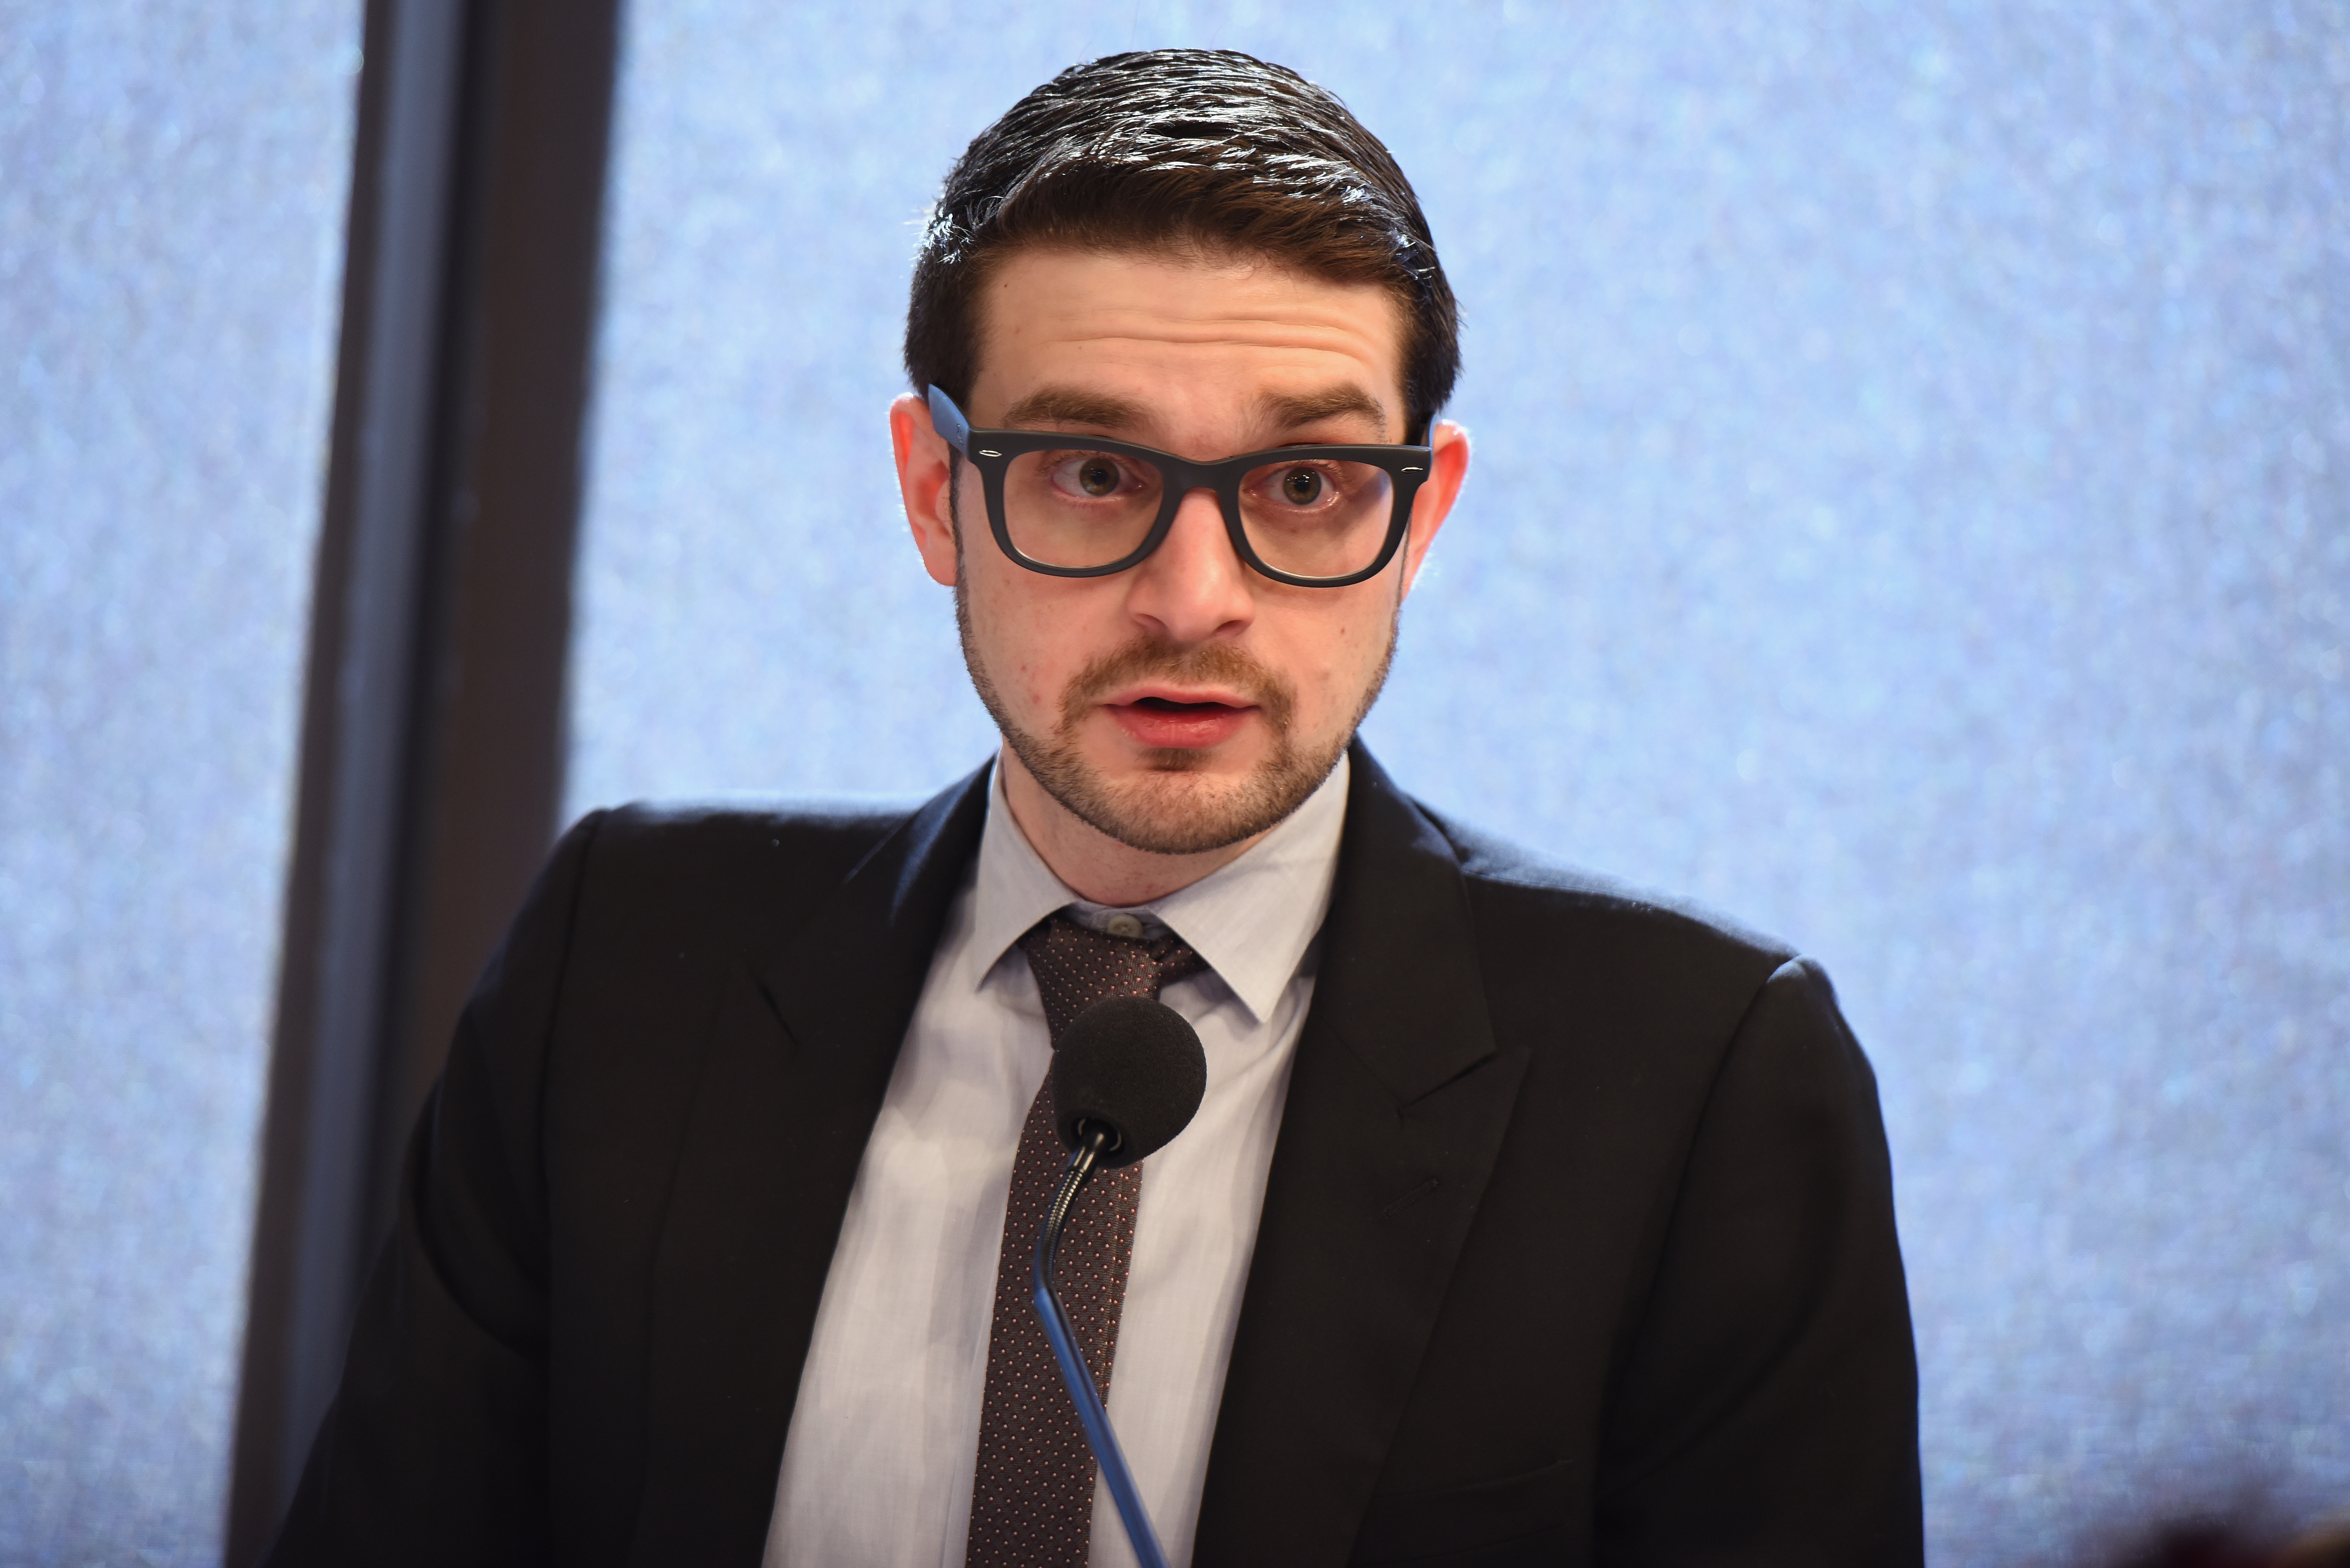 Alexander Soros, George Soros' son, hosted a dinner for prominent Democrats in an effort to redistrict New York. (Dave Kotinsky/Getty Images for Ford Foundation)